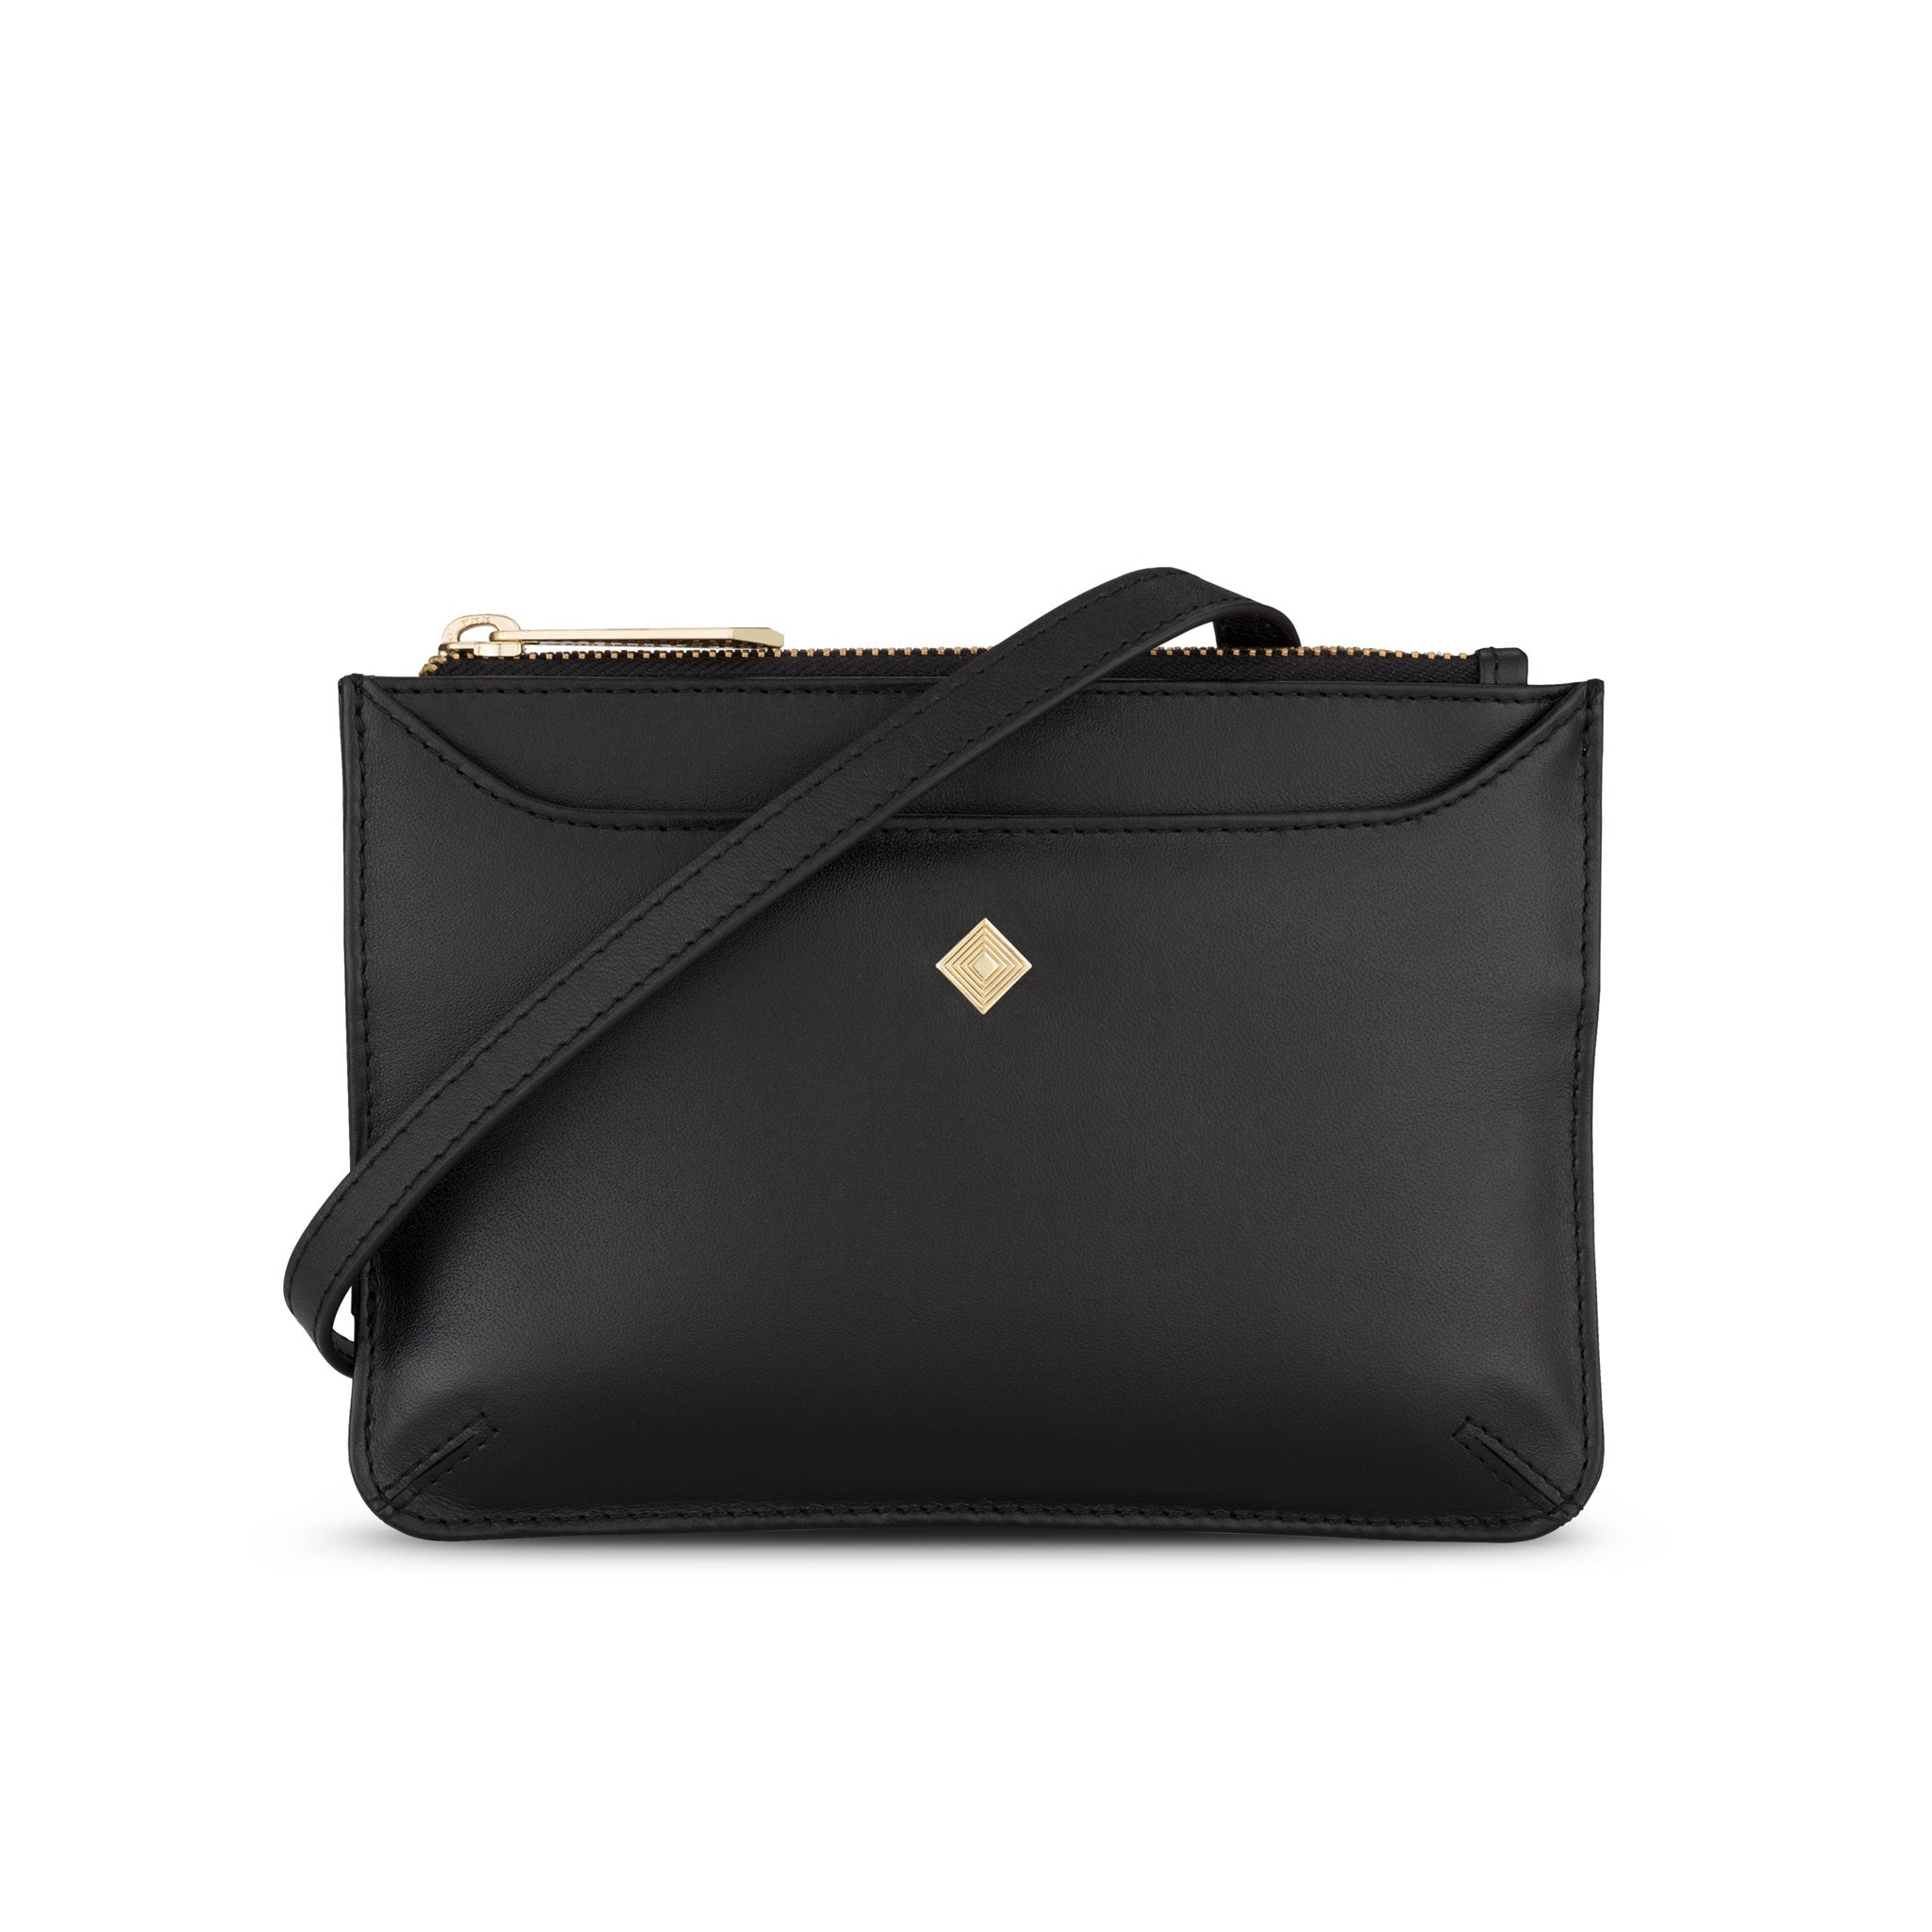 Midi Sakura in Black Leather - Jennifer Hamley luxury leather handbags and laptop bag for working women